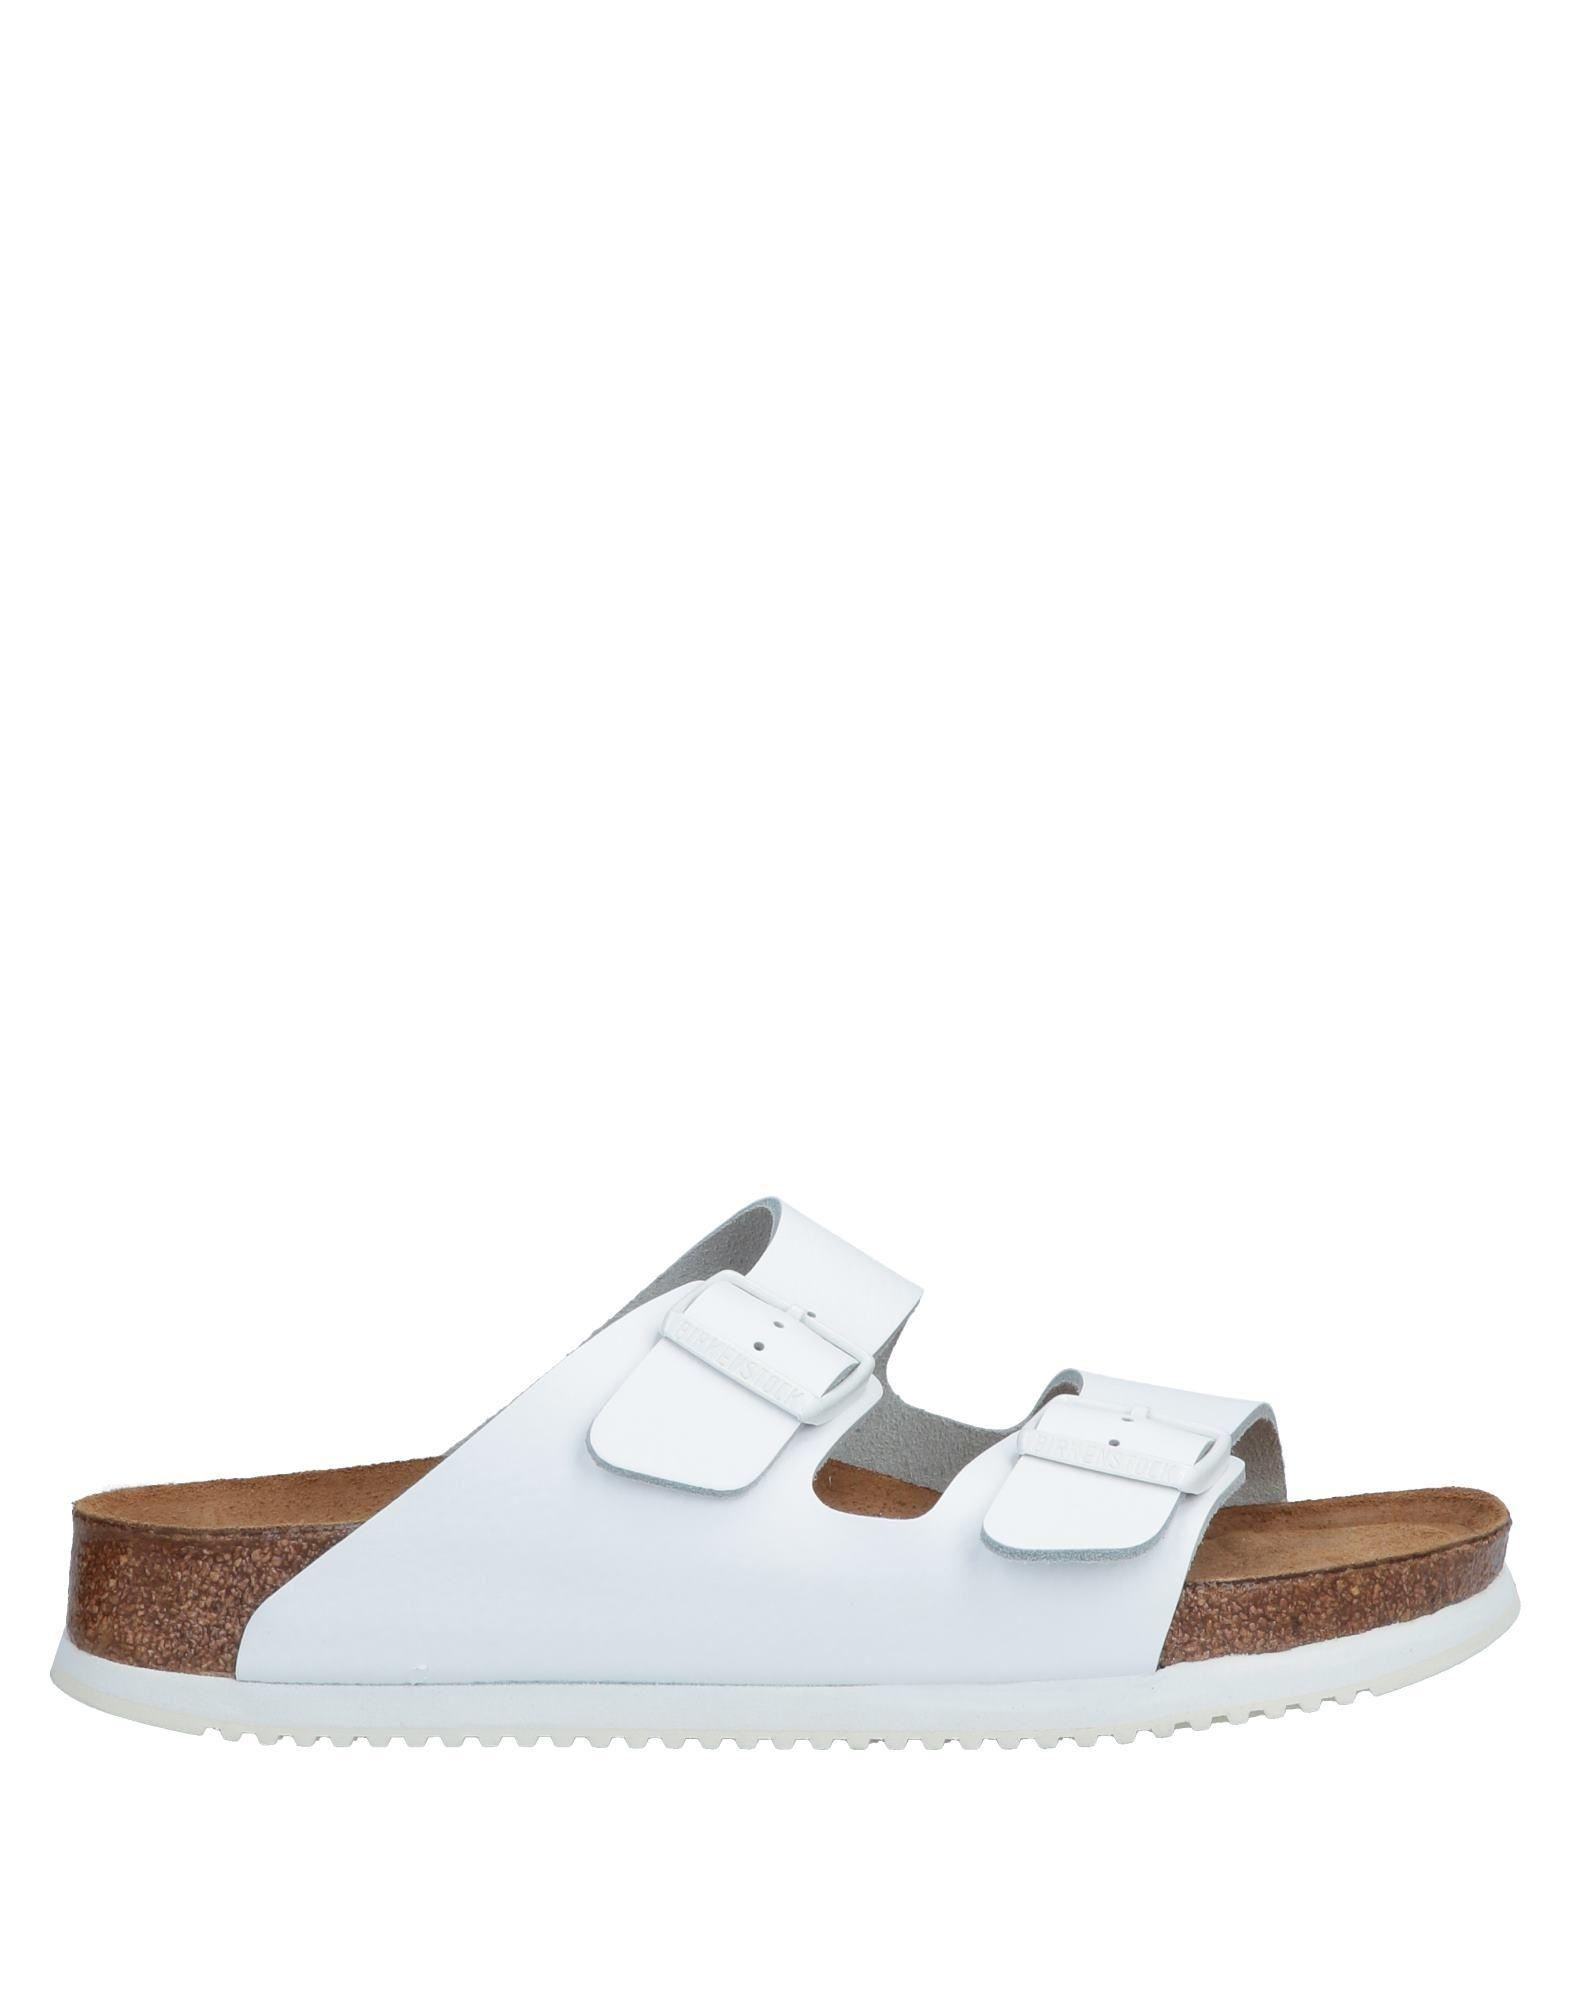 dad487d89bd Lyst - Birkenstock Sandals in White for Men